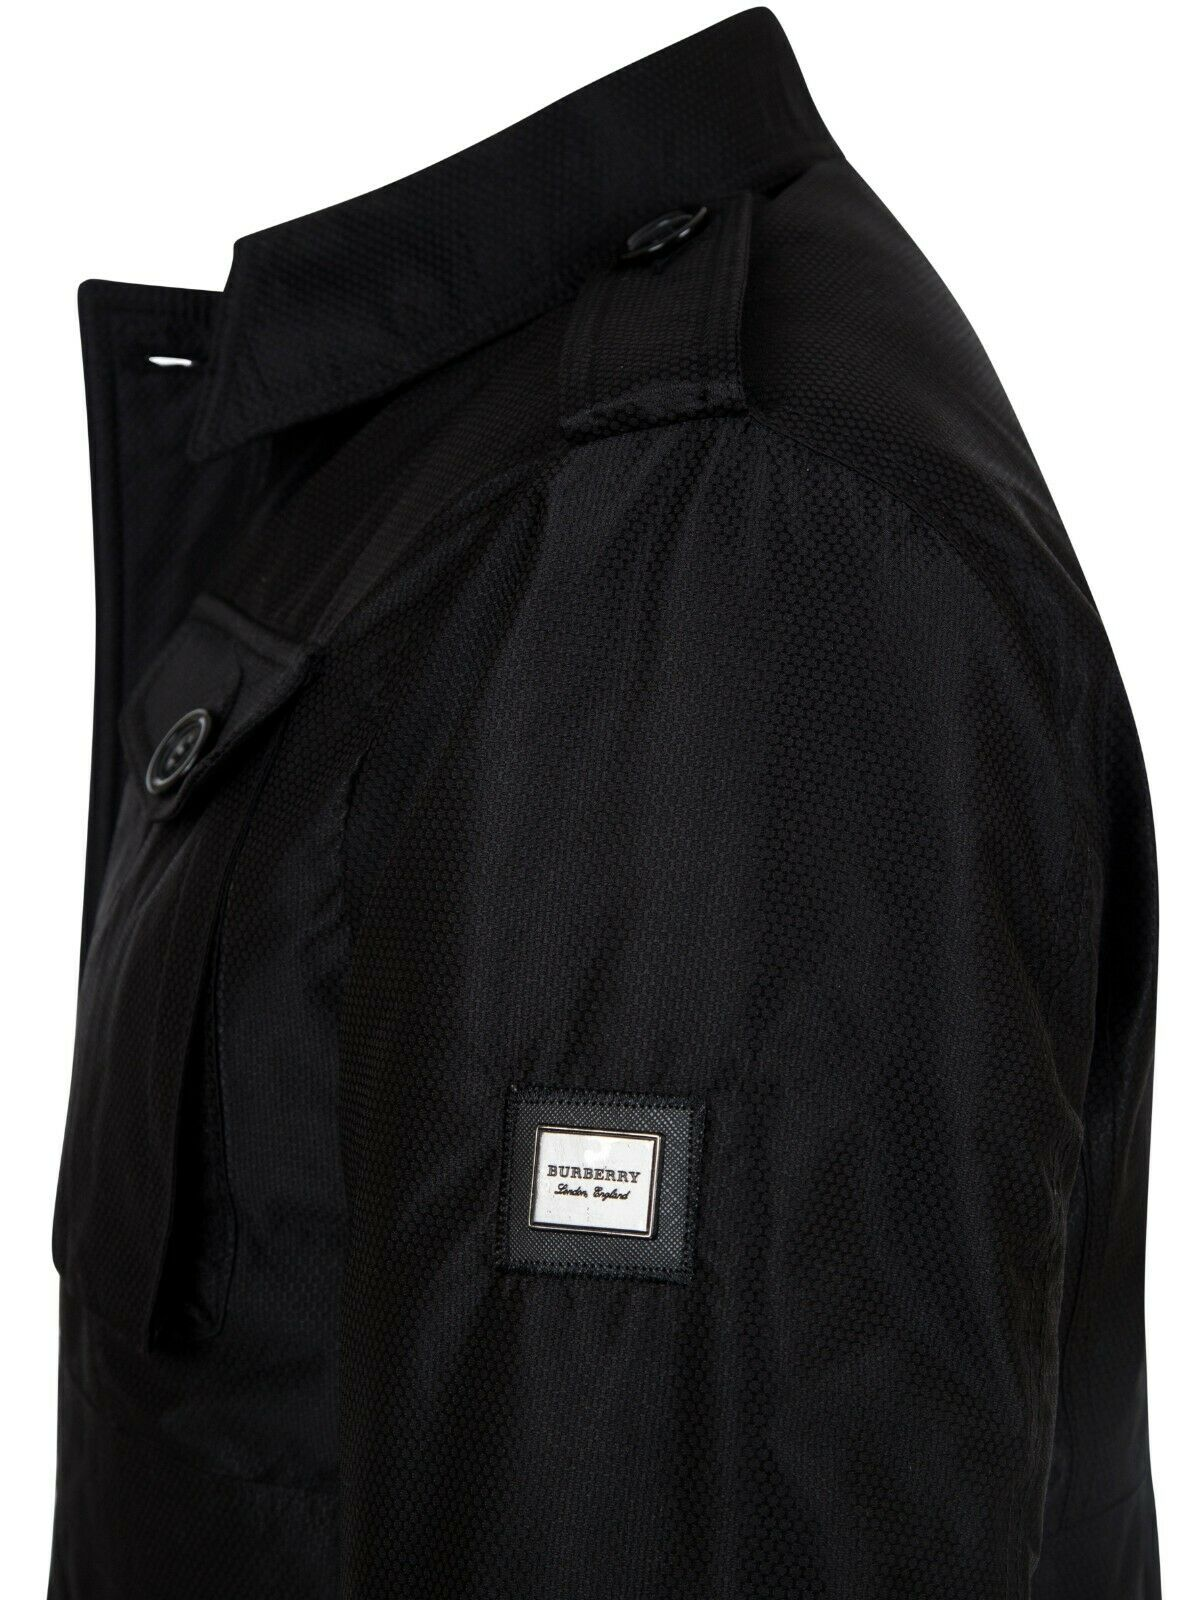 Burberry Black Winter Jacket Slim Fit Size !